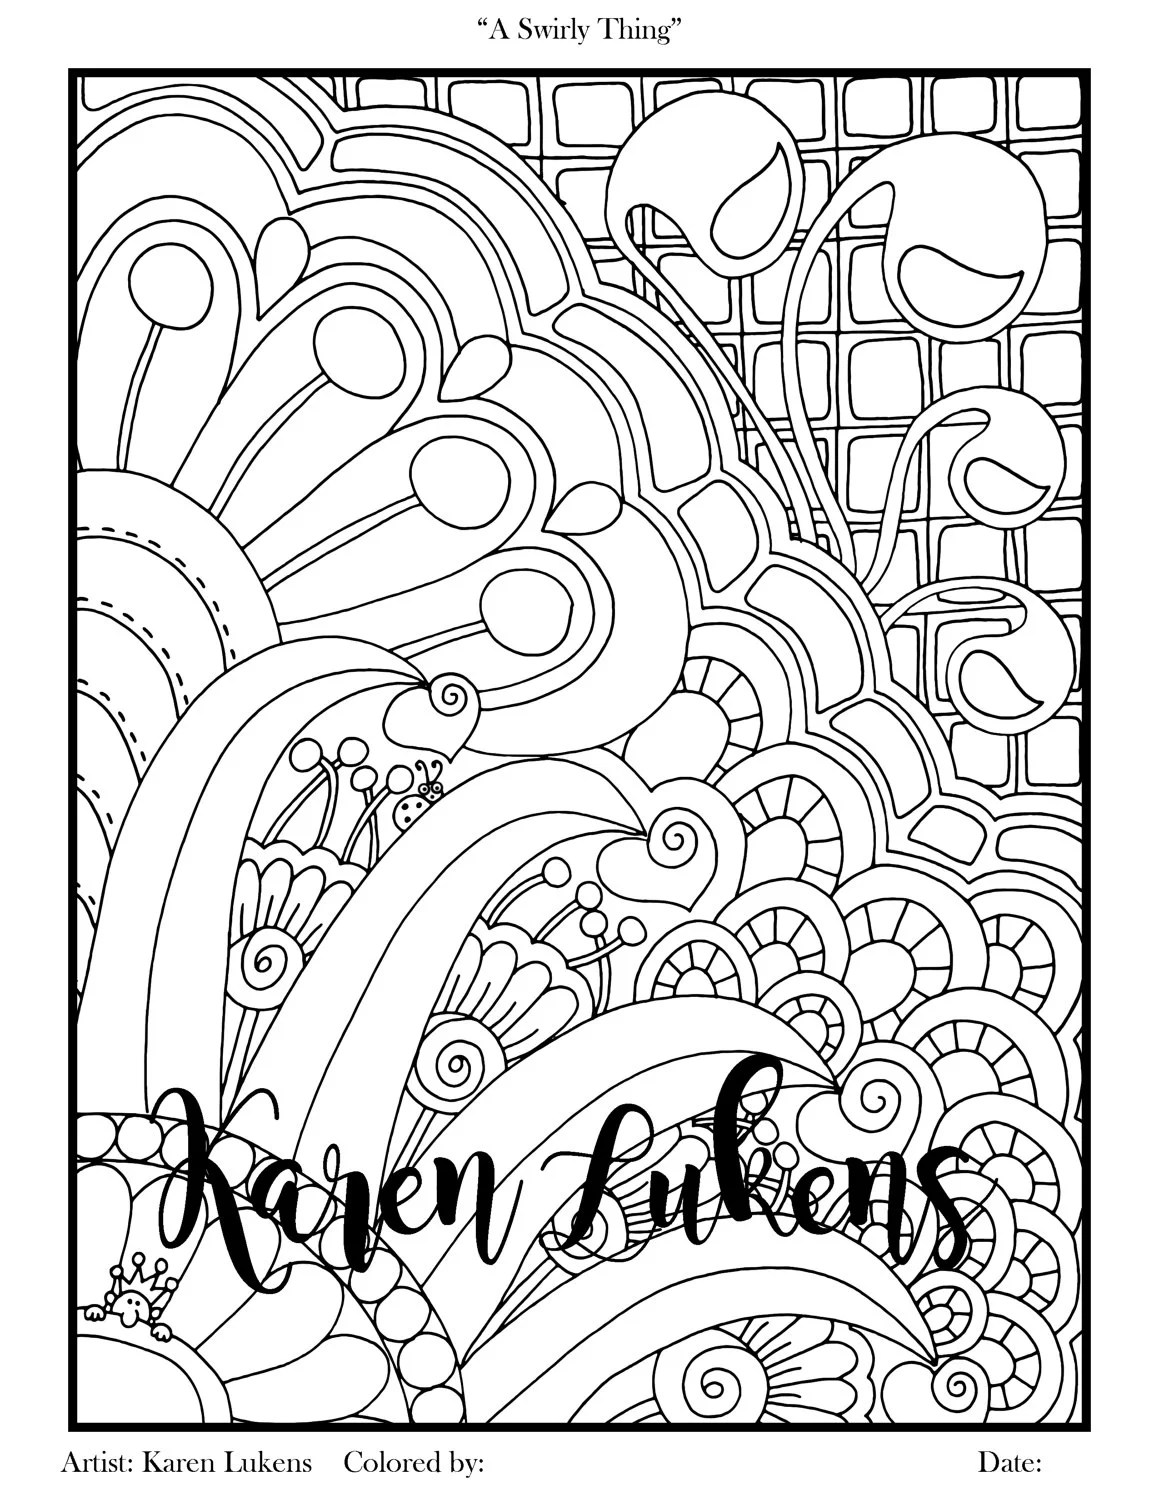 A Swirly Thing 1 Adult Coloring Book Page Printable